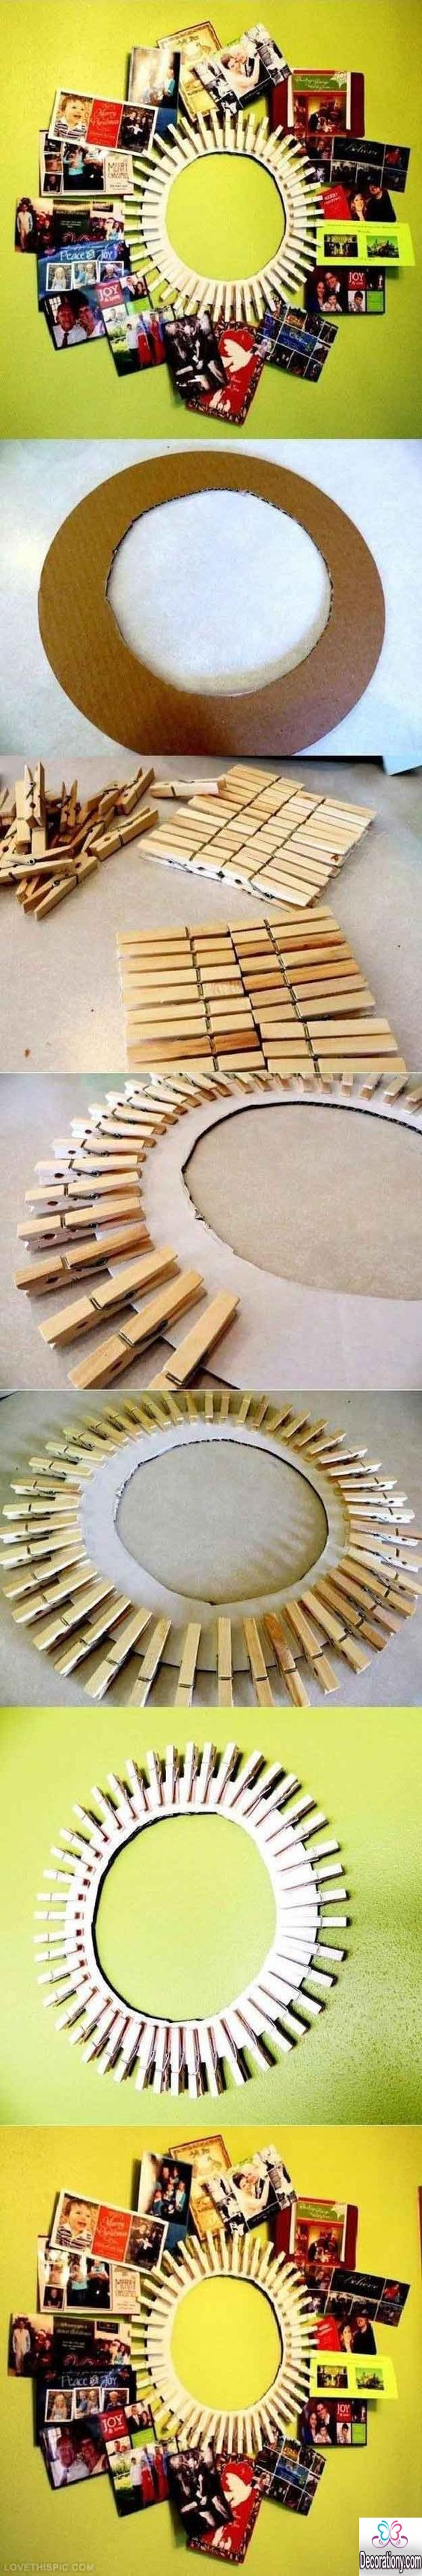 cool diy project for teens